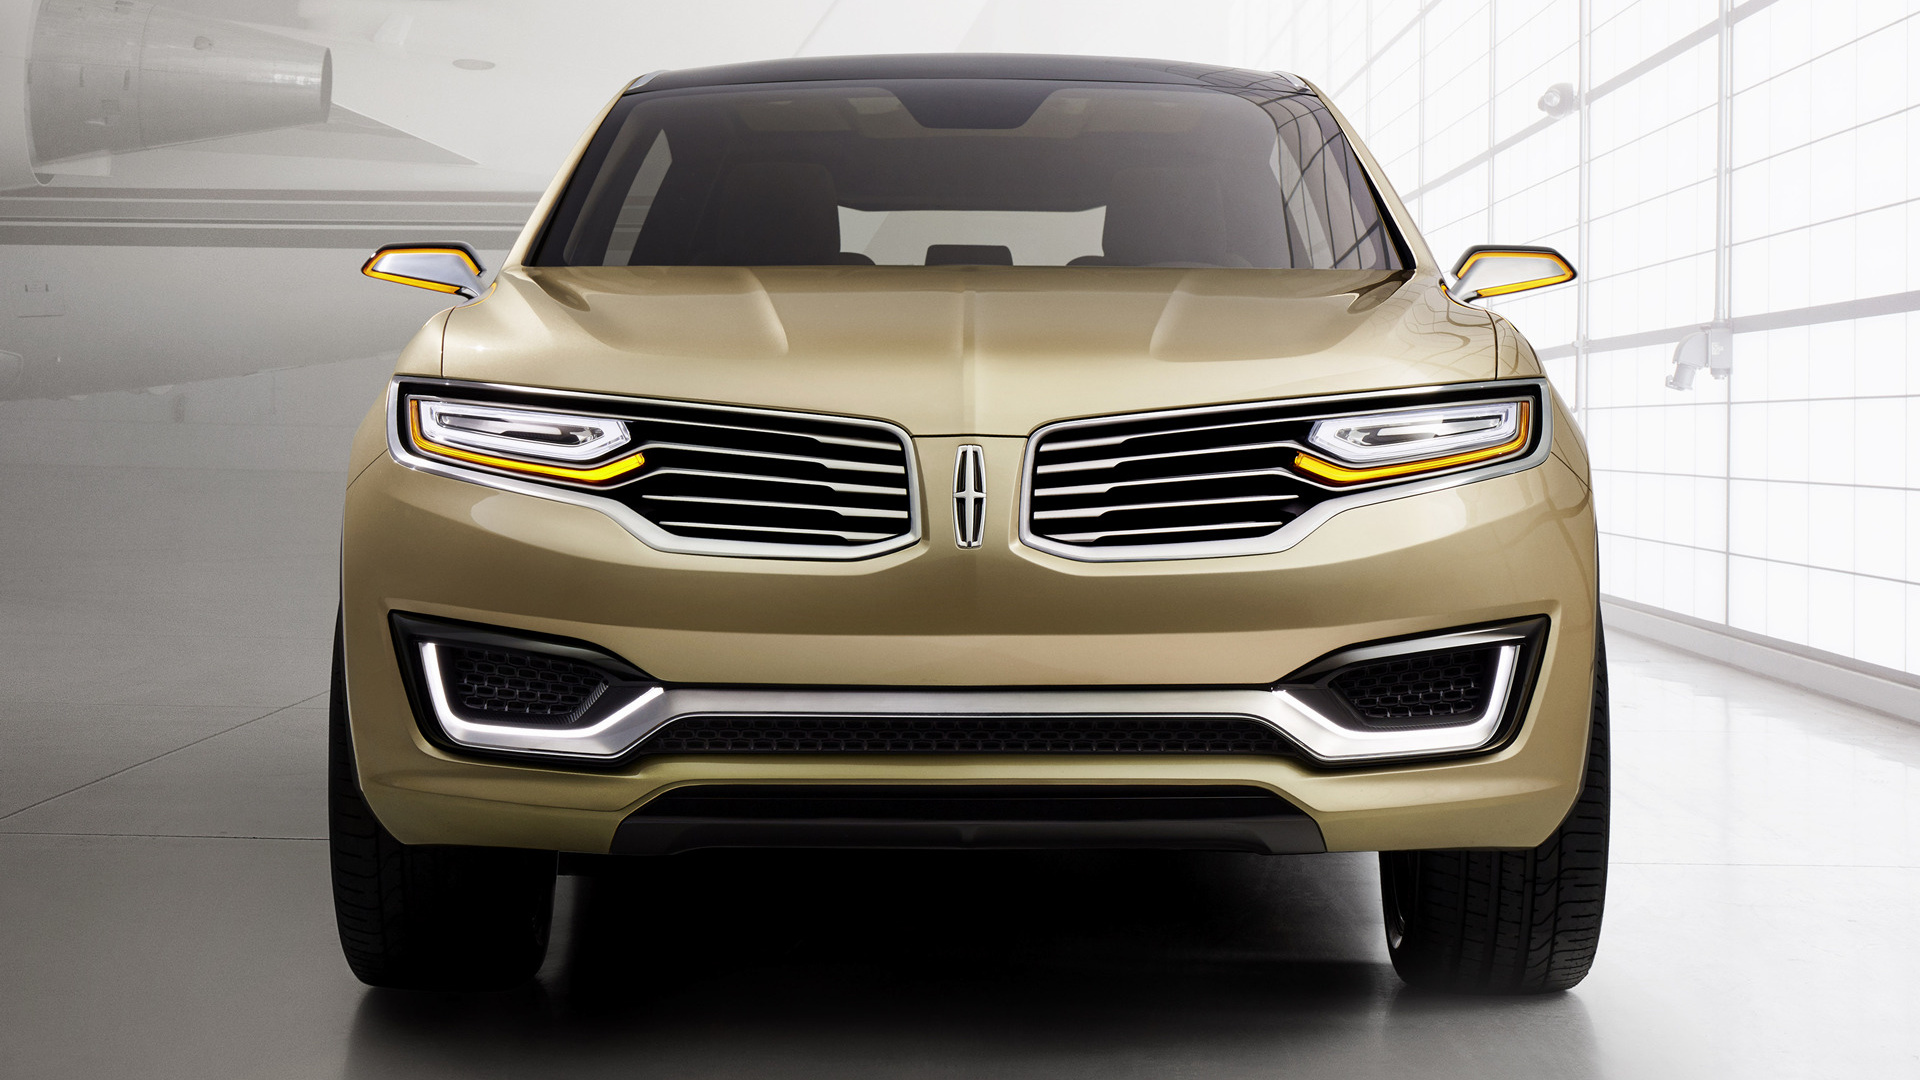 Lincoln MKX Concept (2014) Wallpapers and HD Images